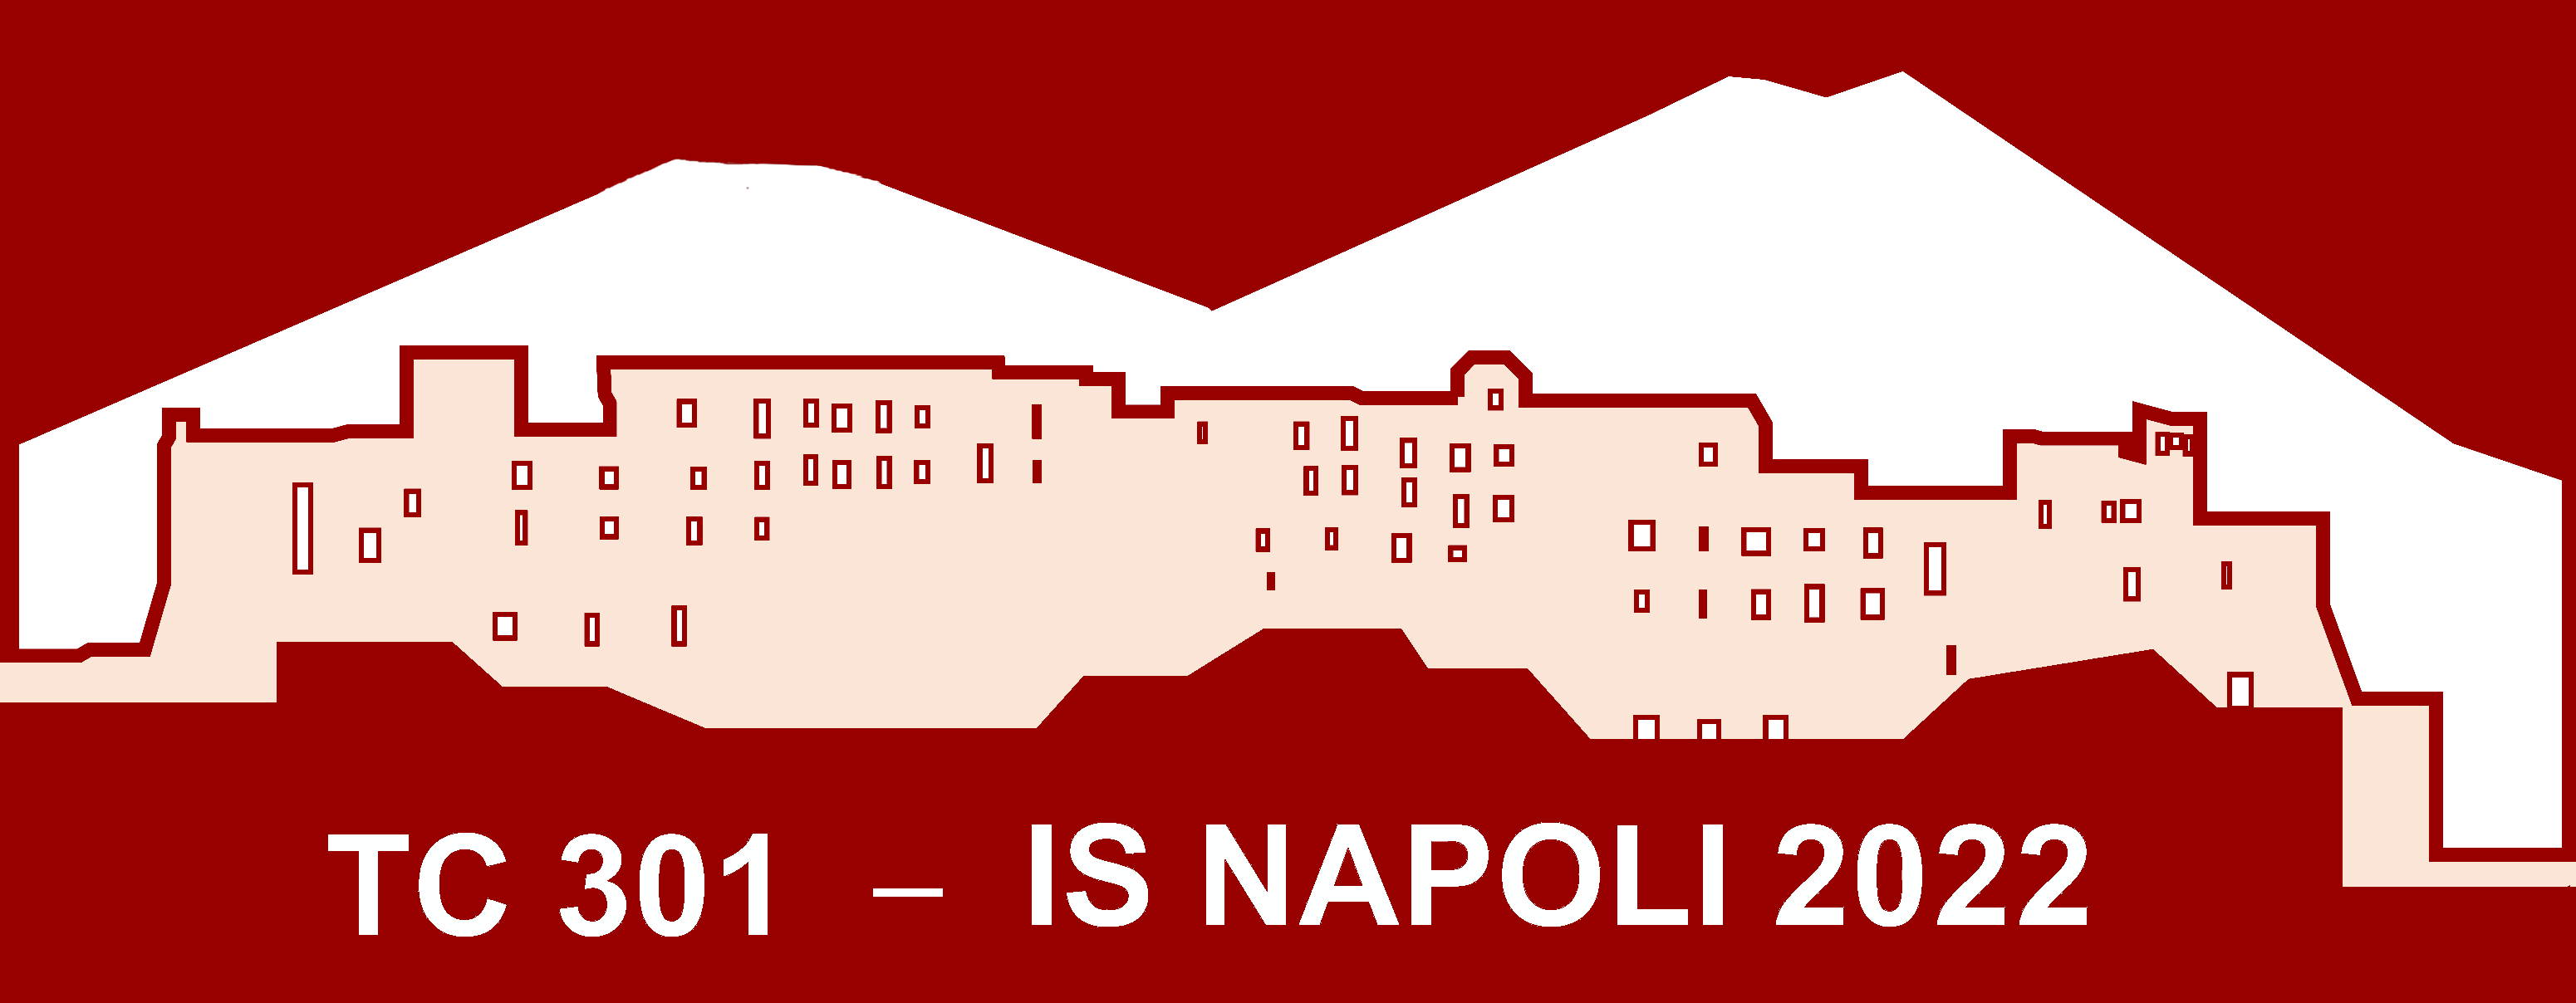 TC 301 - IS NAPLES 2022